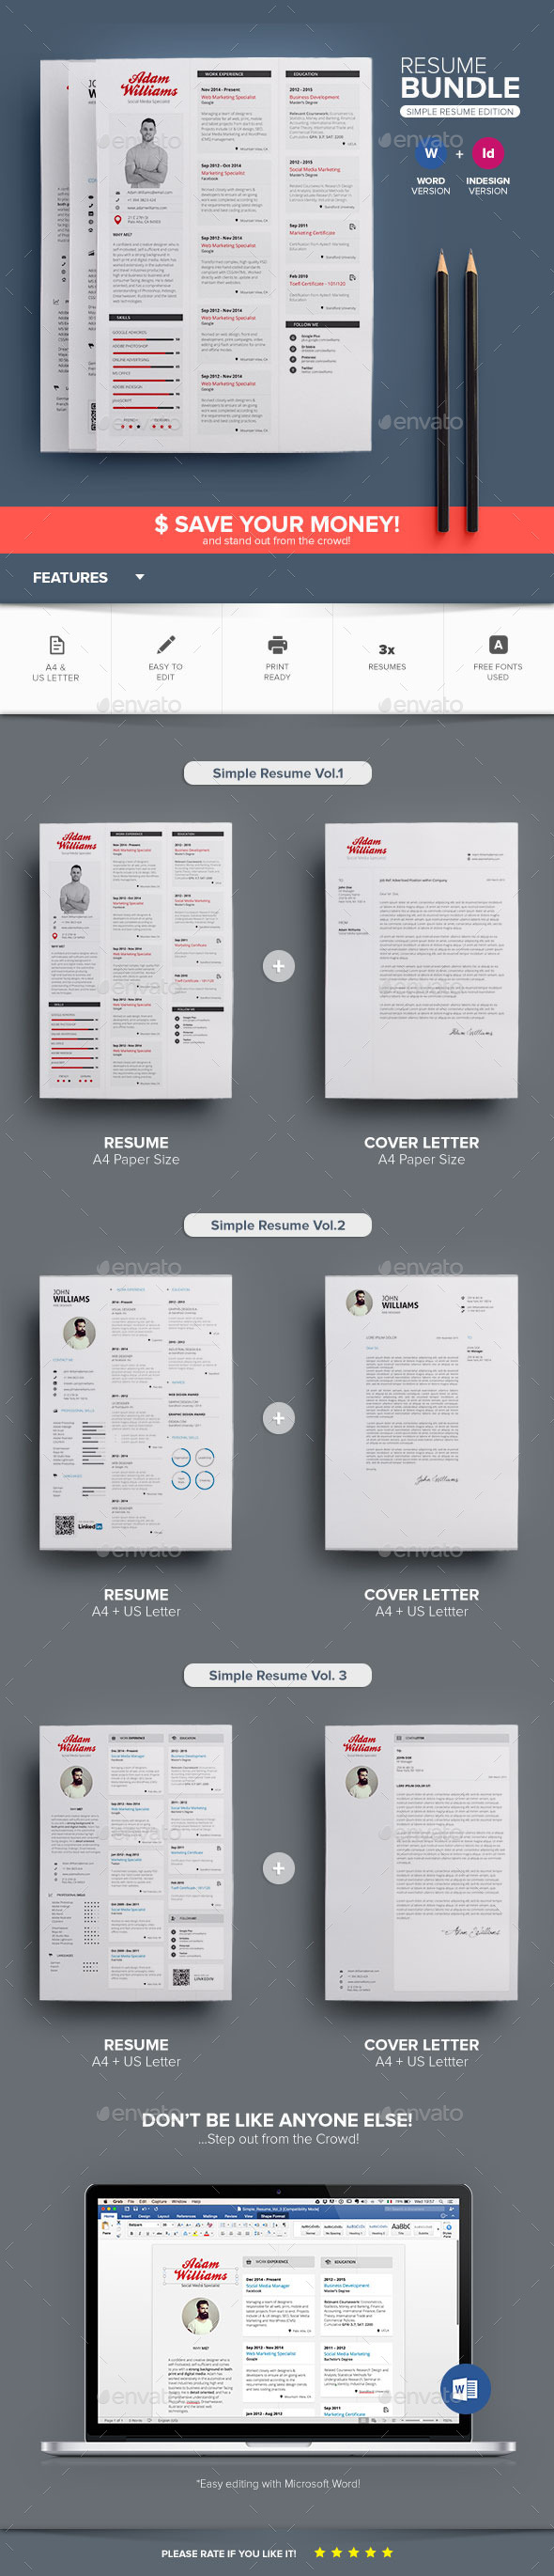 GraphicRiver Simple Resume Bundle 11812775